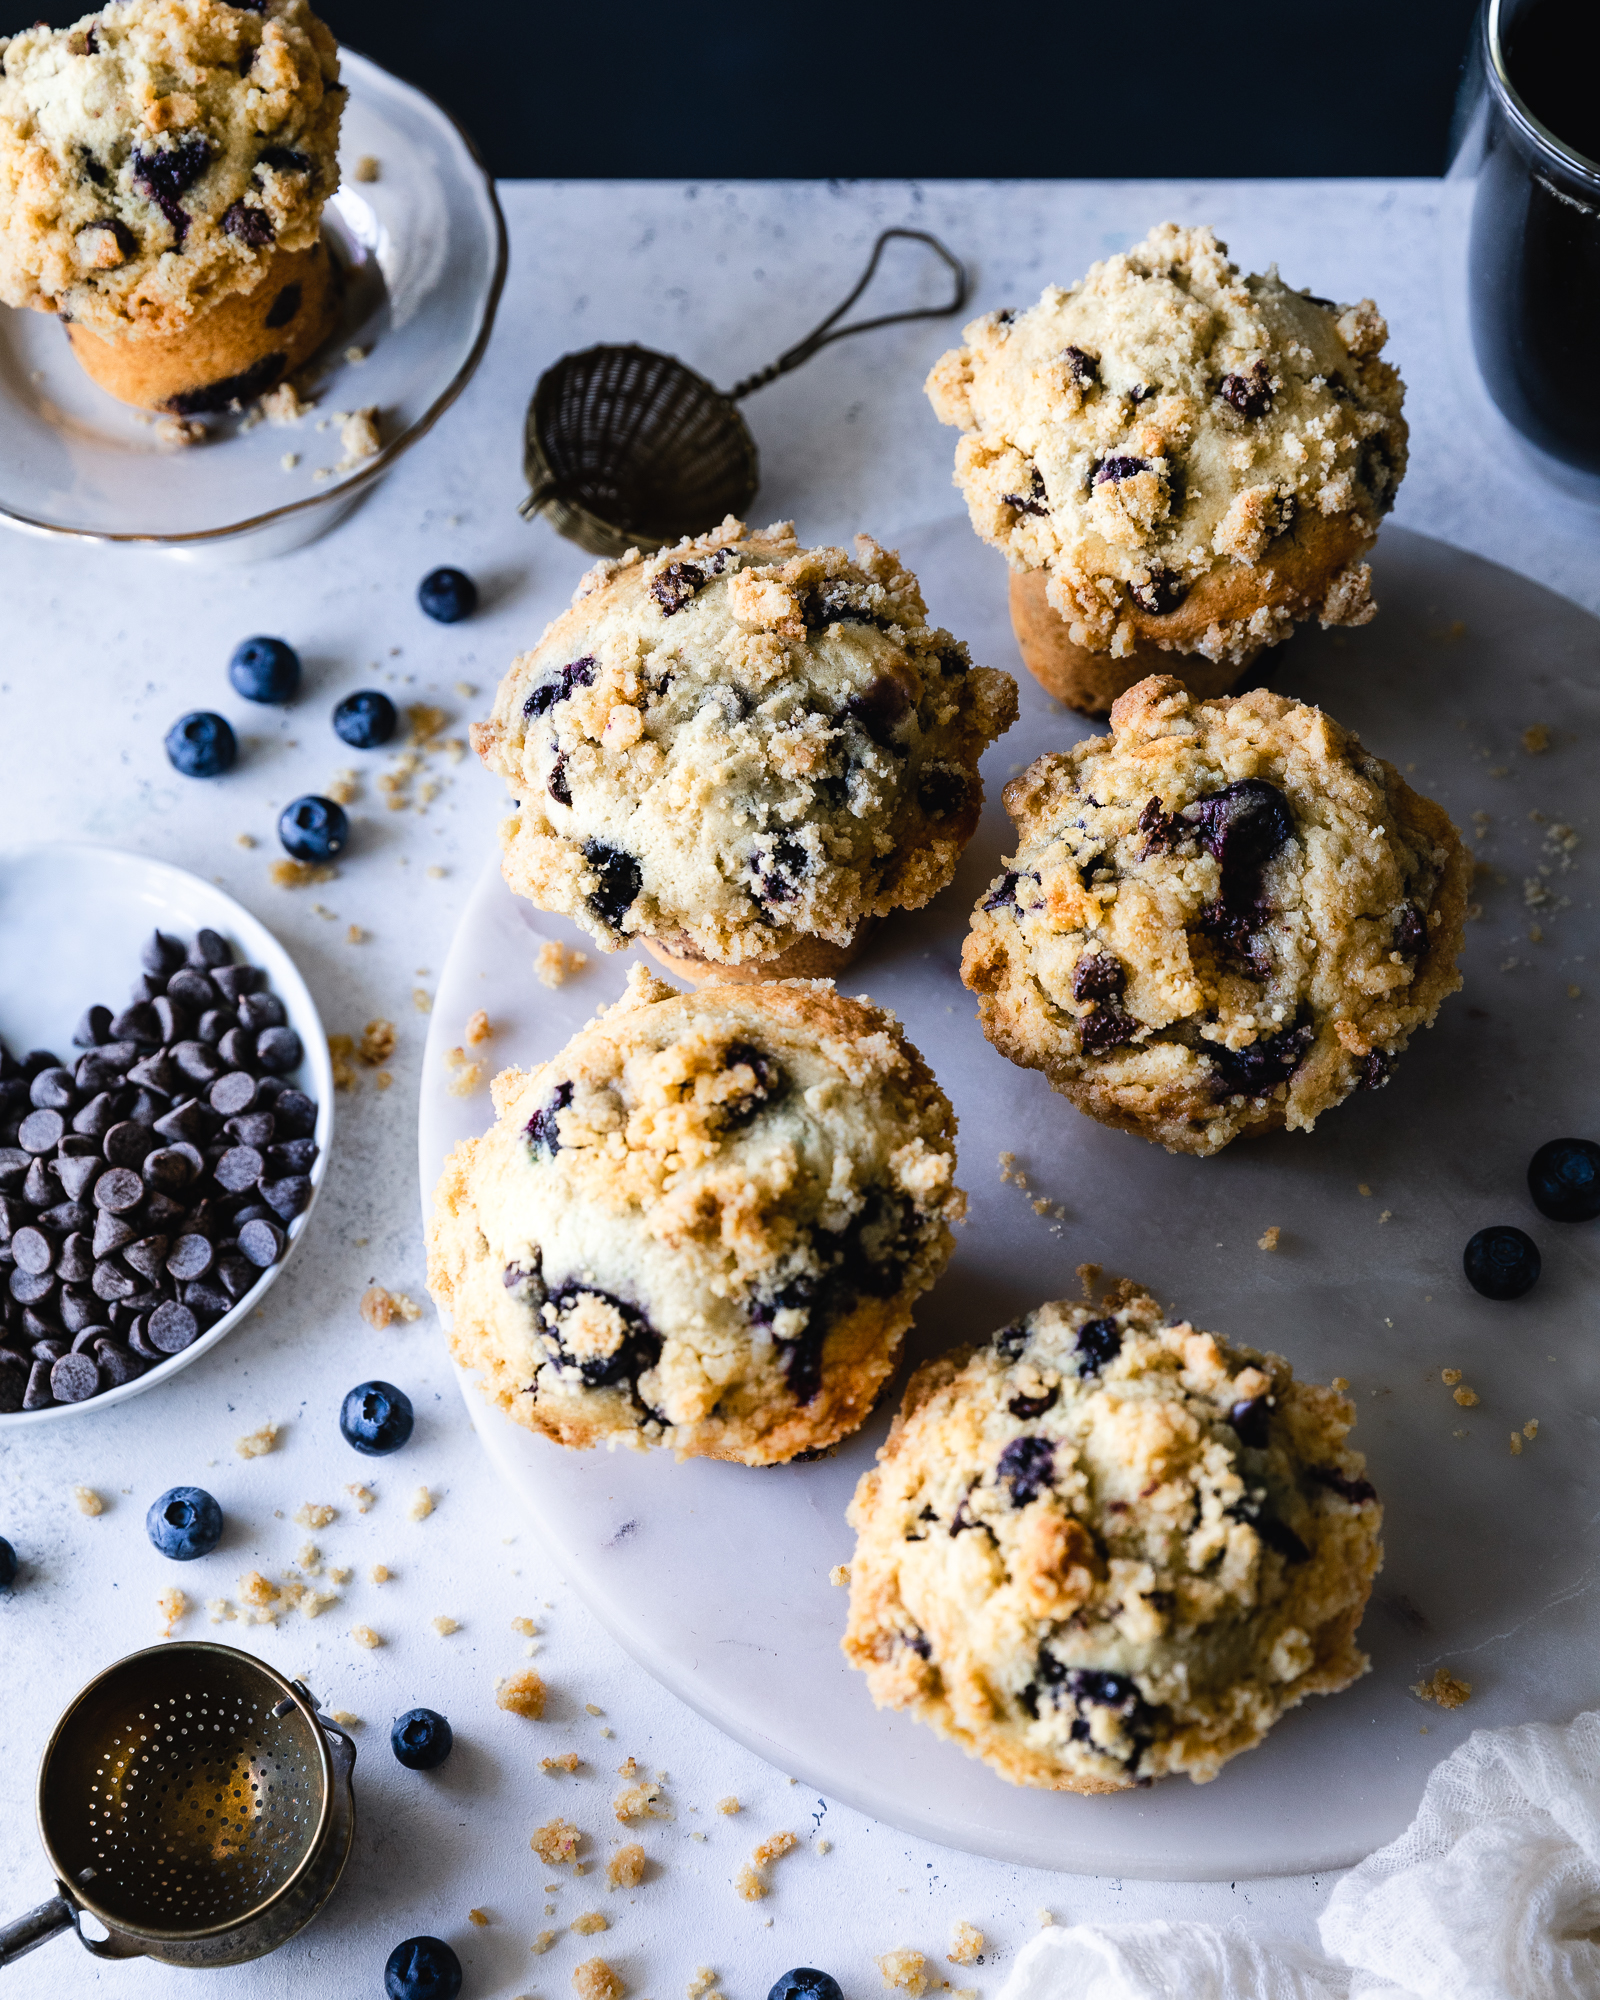 Blueberries & Chocolate Chip Muffins - CrumbRaw sugar – 4 TBSPBrown sugar – 4 TBSPUnbleached all purpose flour – ⅔ cupButter, semi softened – 5 TBSPPinch of fine sea saltMuffin batterSemi-sweet chocolate chips – 1 ½ cupUnbleached all purpose flour – 2 ½ cups + 1 ½ TBSPBlueberries, preferably frozen (see notes) – 1 ½ cupAlmond flour – ½ cupBaking powder – 4 TspFine sea salt – 1 TspRaw sugar – 1 cupOrganic free range eggs – 2Ricotta cheese – ½ cupVegetable oil – ½ cupCoconut milk – 1 cupPure vanilla extract - 1 Tsp